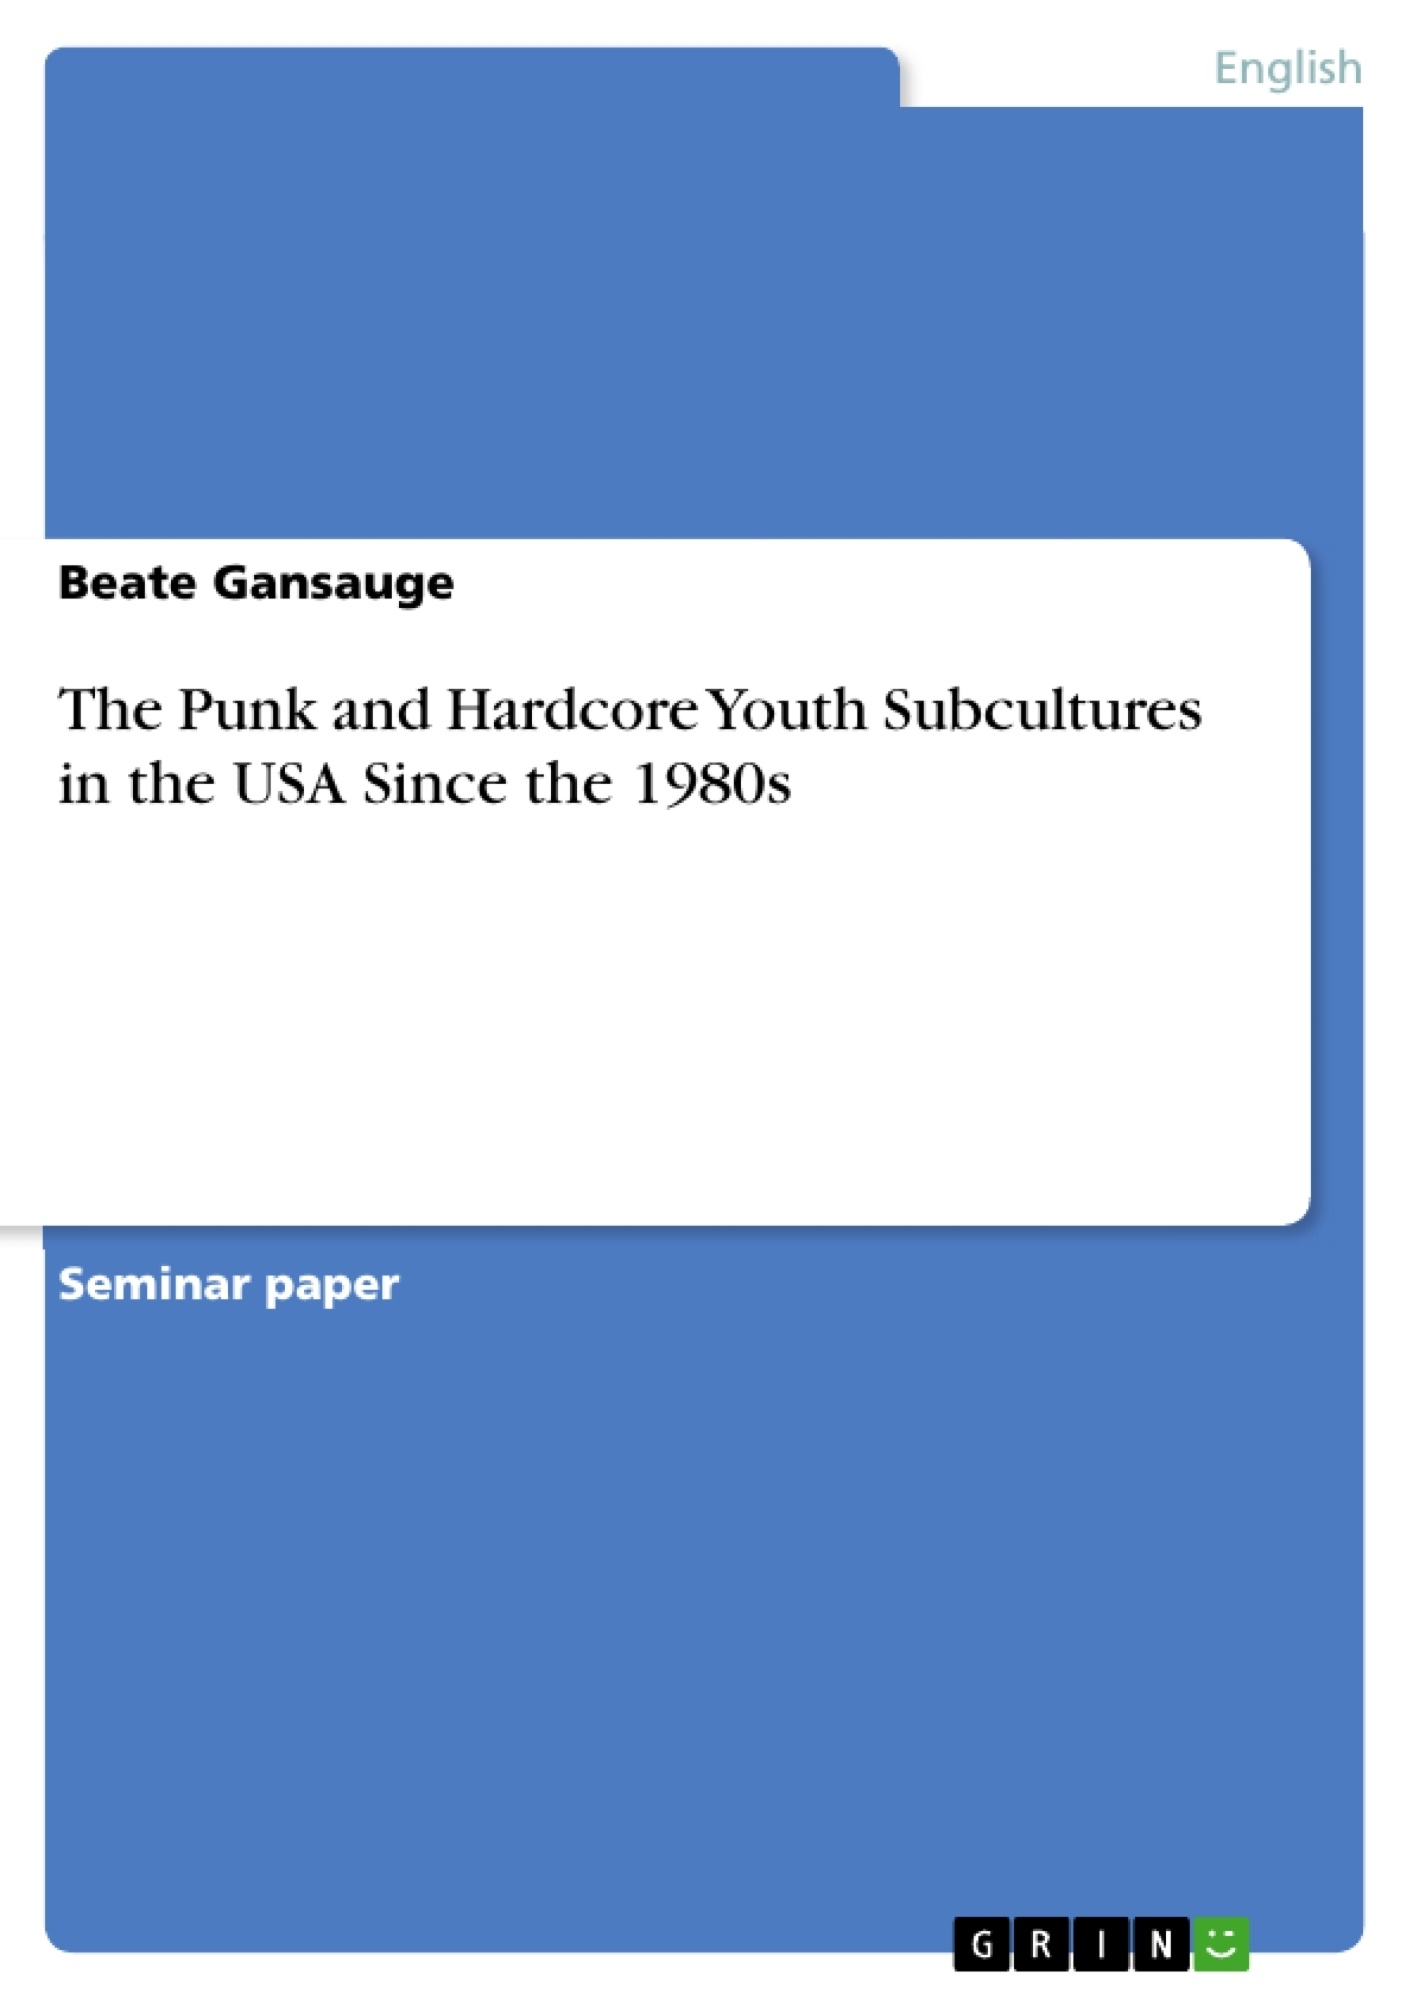 Title: The Punk and Hardcore Youth Subcultures in the USA Since the 1980s